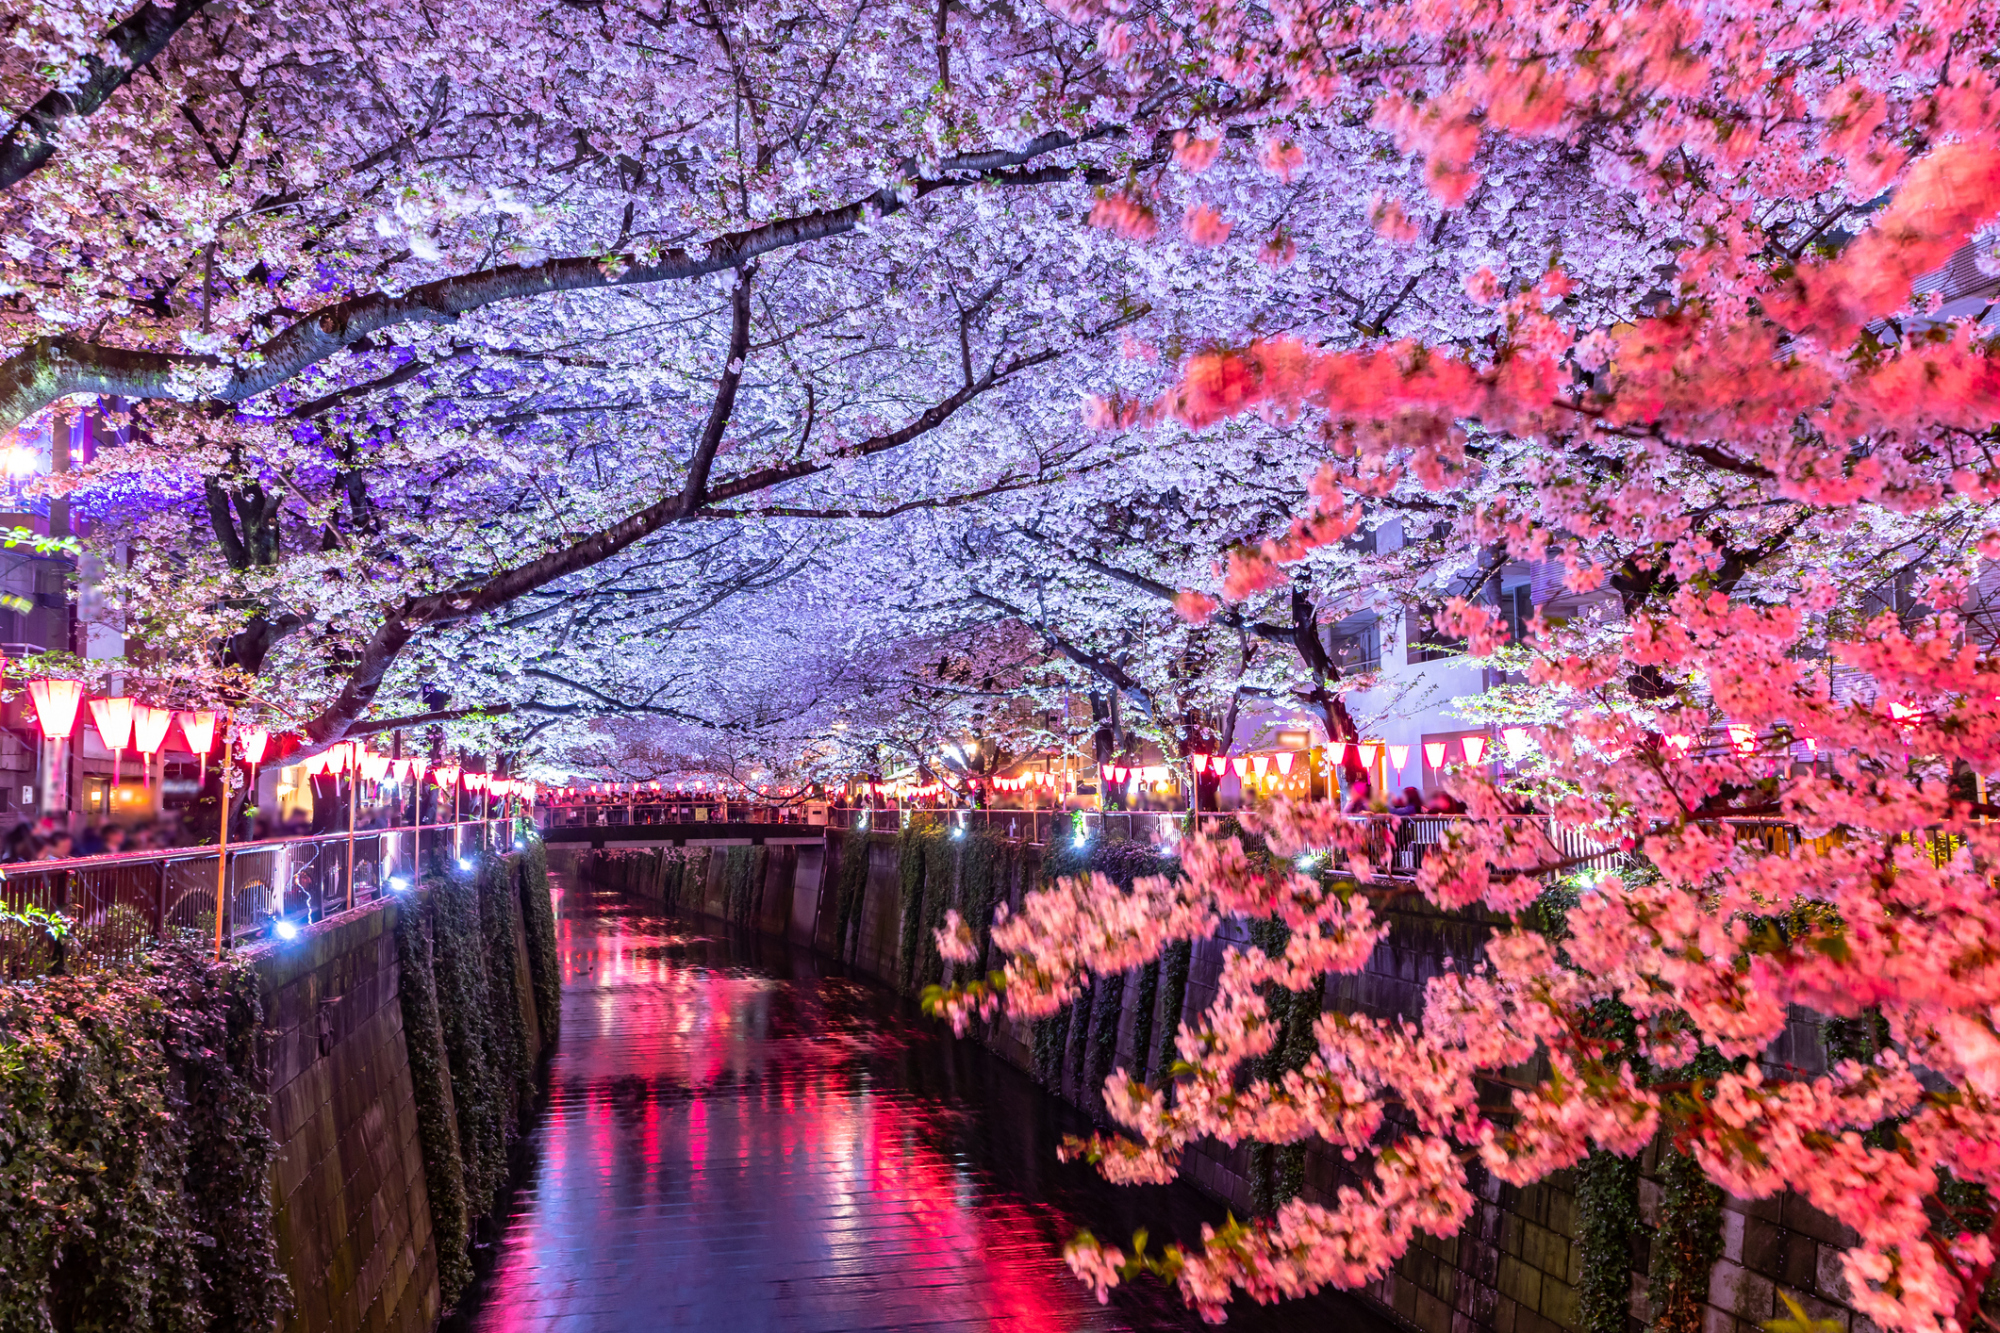 Despite calls for self-restraint in organizing large events to help prevent the spread of the new coronavirus, Ehime Gov. Tokihiro Nakamura said he won't urge the cancellation of hanami parties. | GETTY IMAGES